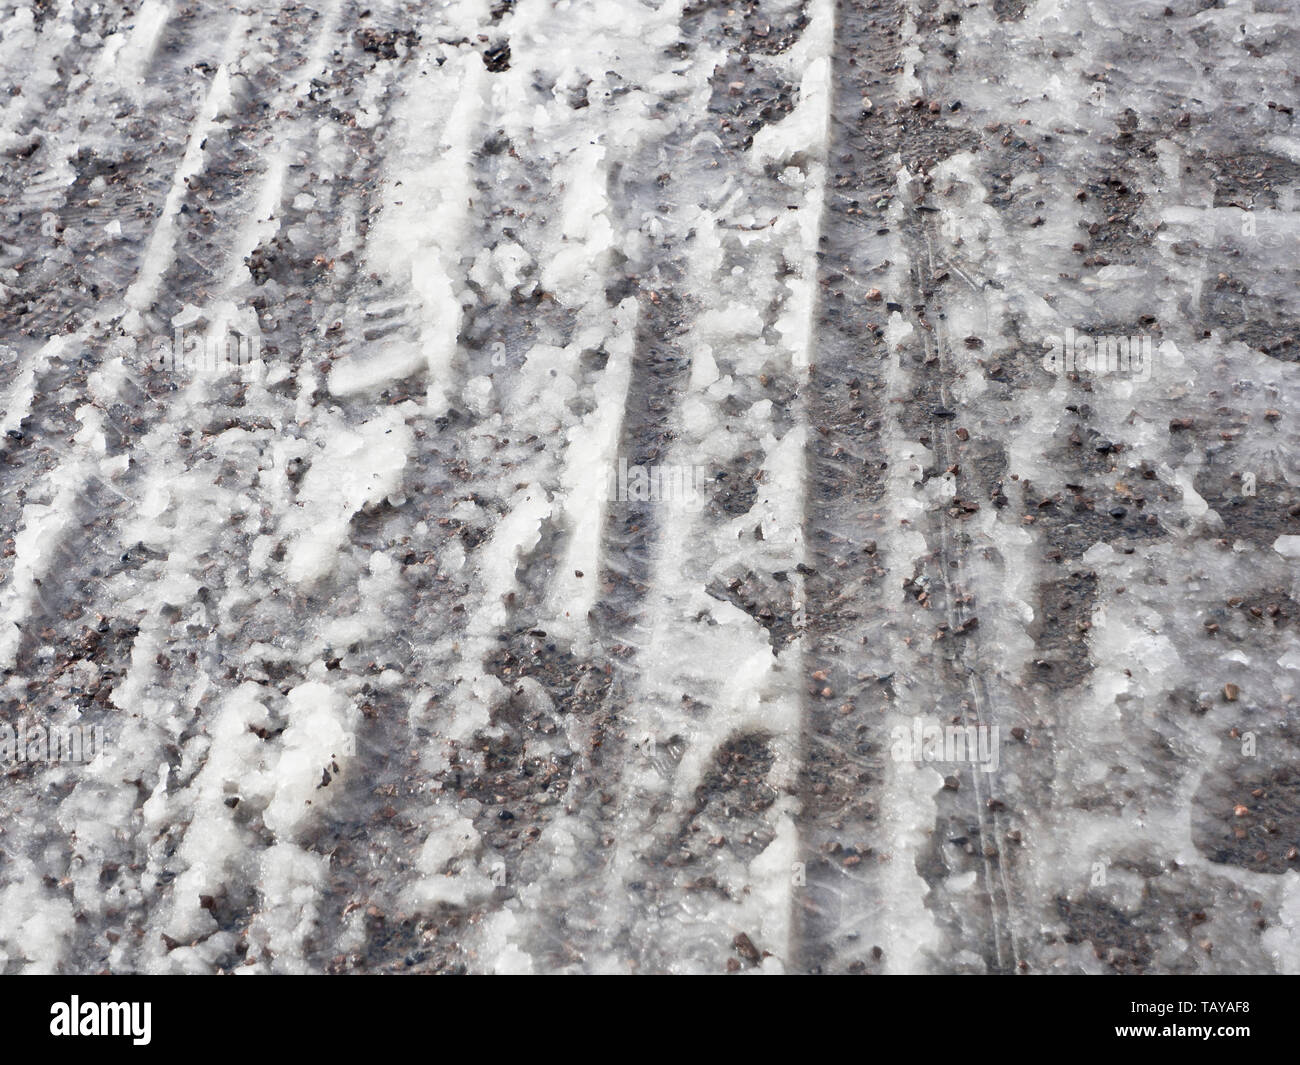 Footprints and bicycle tracks on wet snow is a common surface on the pavements in Oslo Norway in wintertime - Stock Image